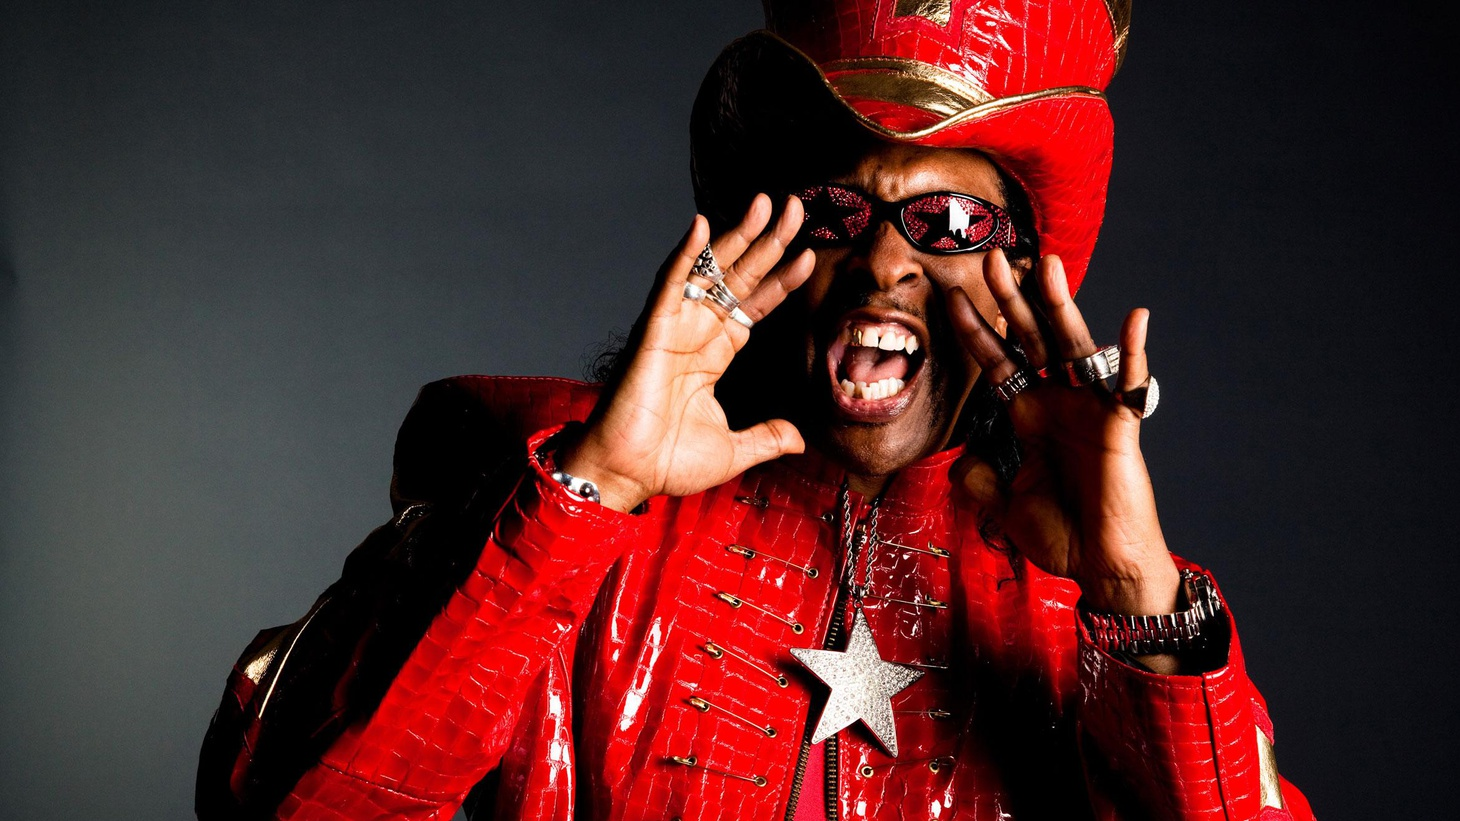 Rock & Roll Hall of Famer and iconic bassist Bootsy Collins has pioneered funk along with Parliament Funkadelic and James Brown....